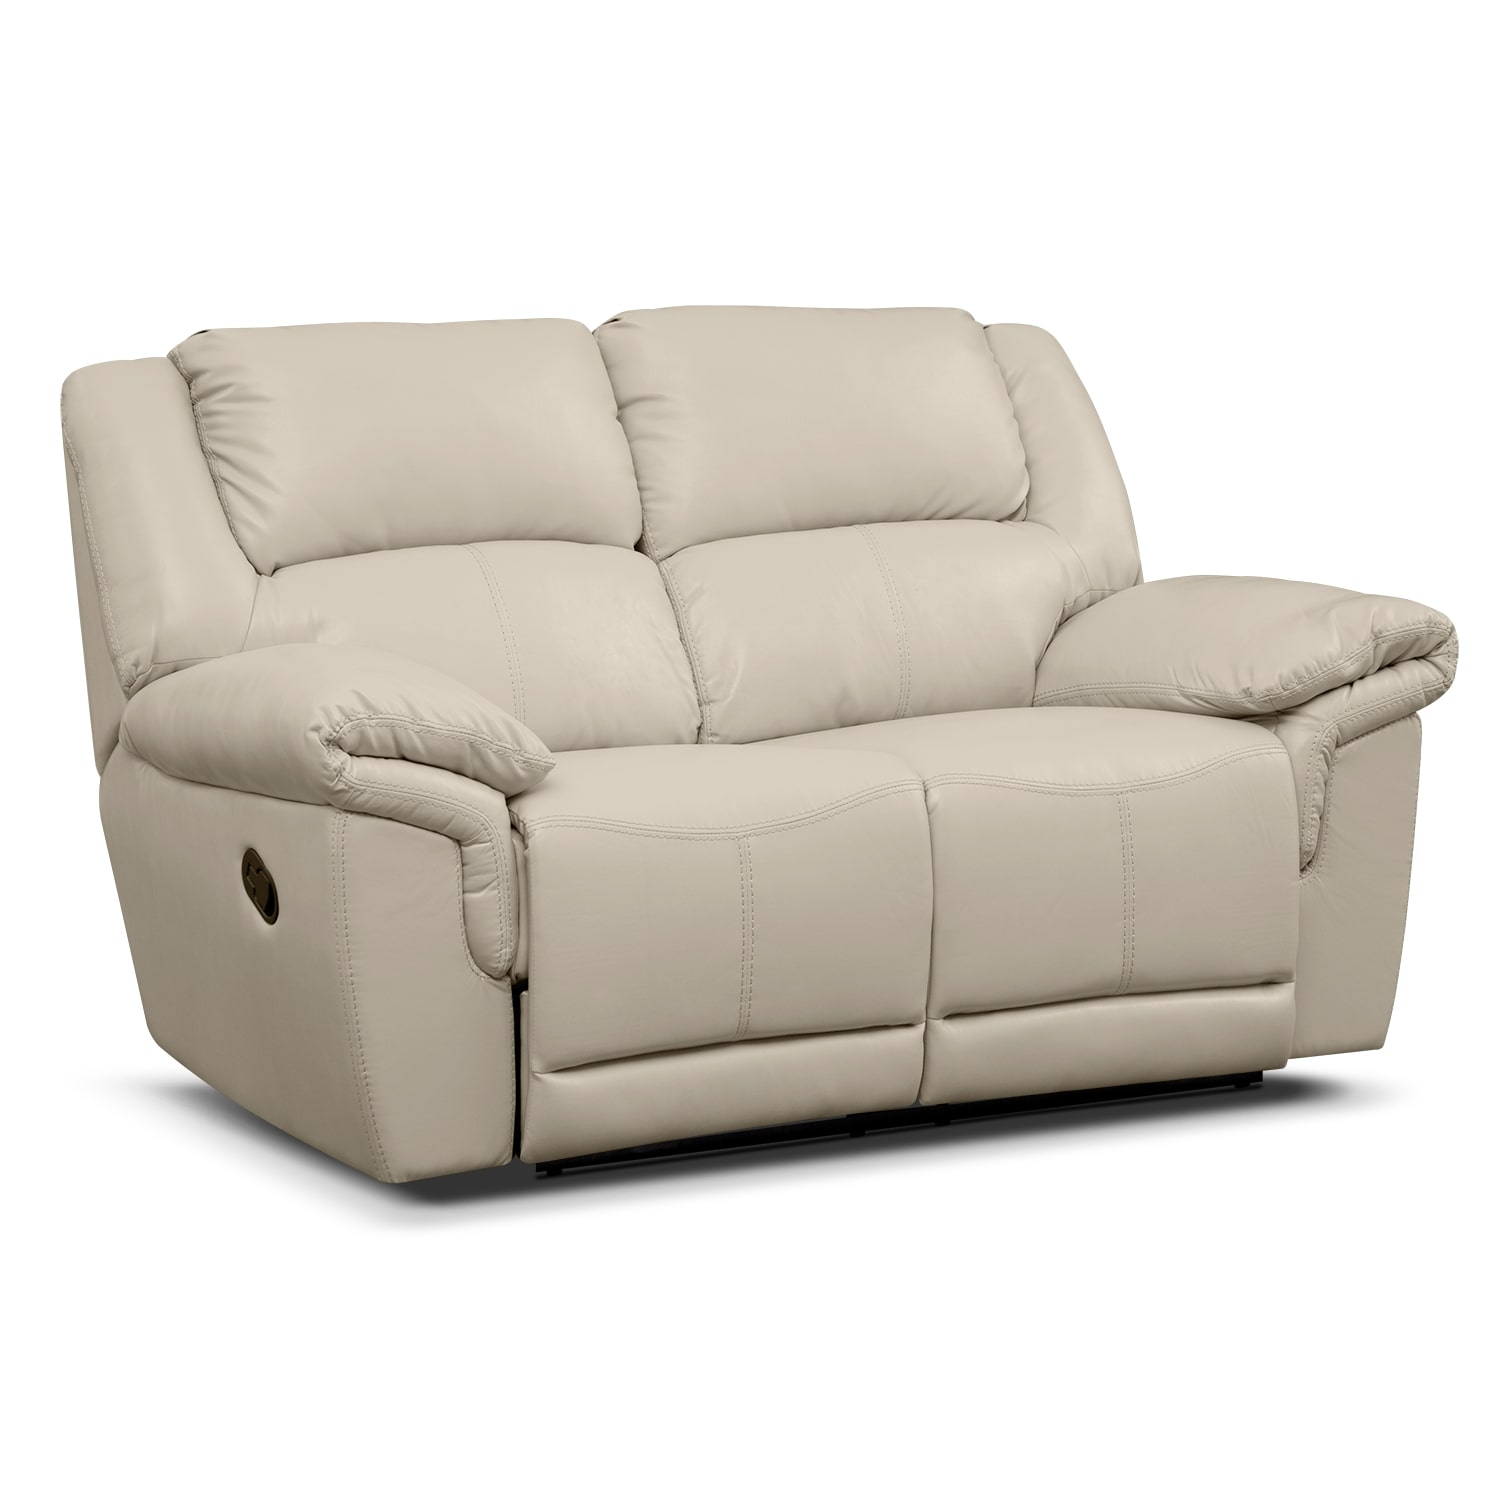 Jaguar Iii Leather Dual Reclining Loveseat Value City Furniture